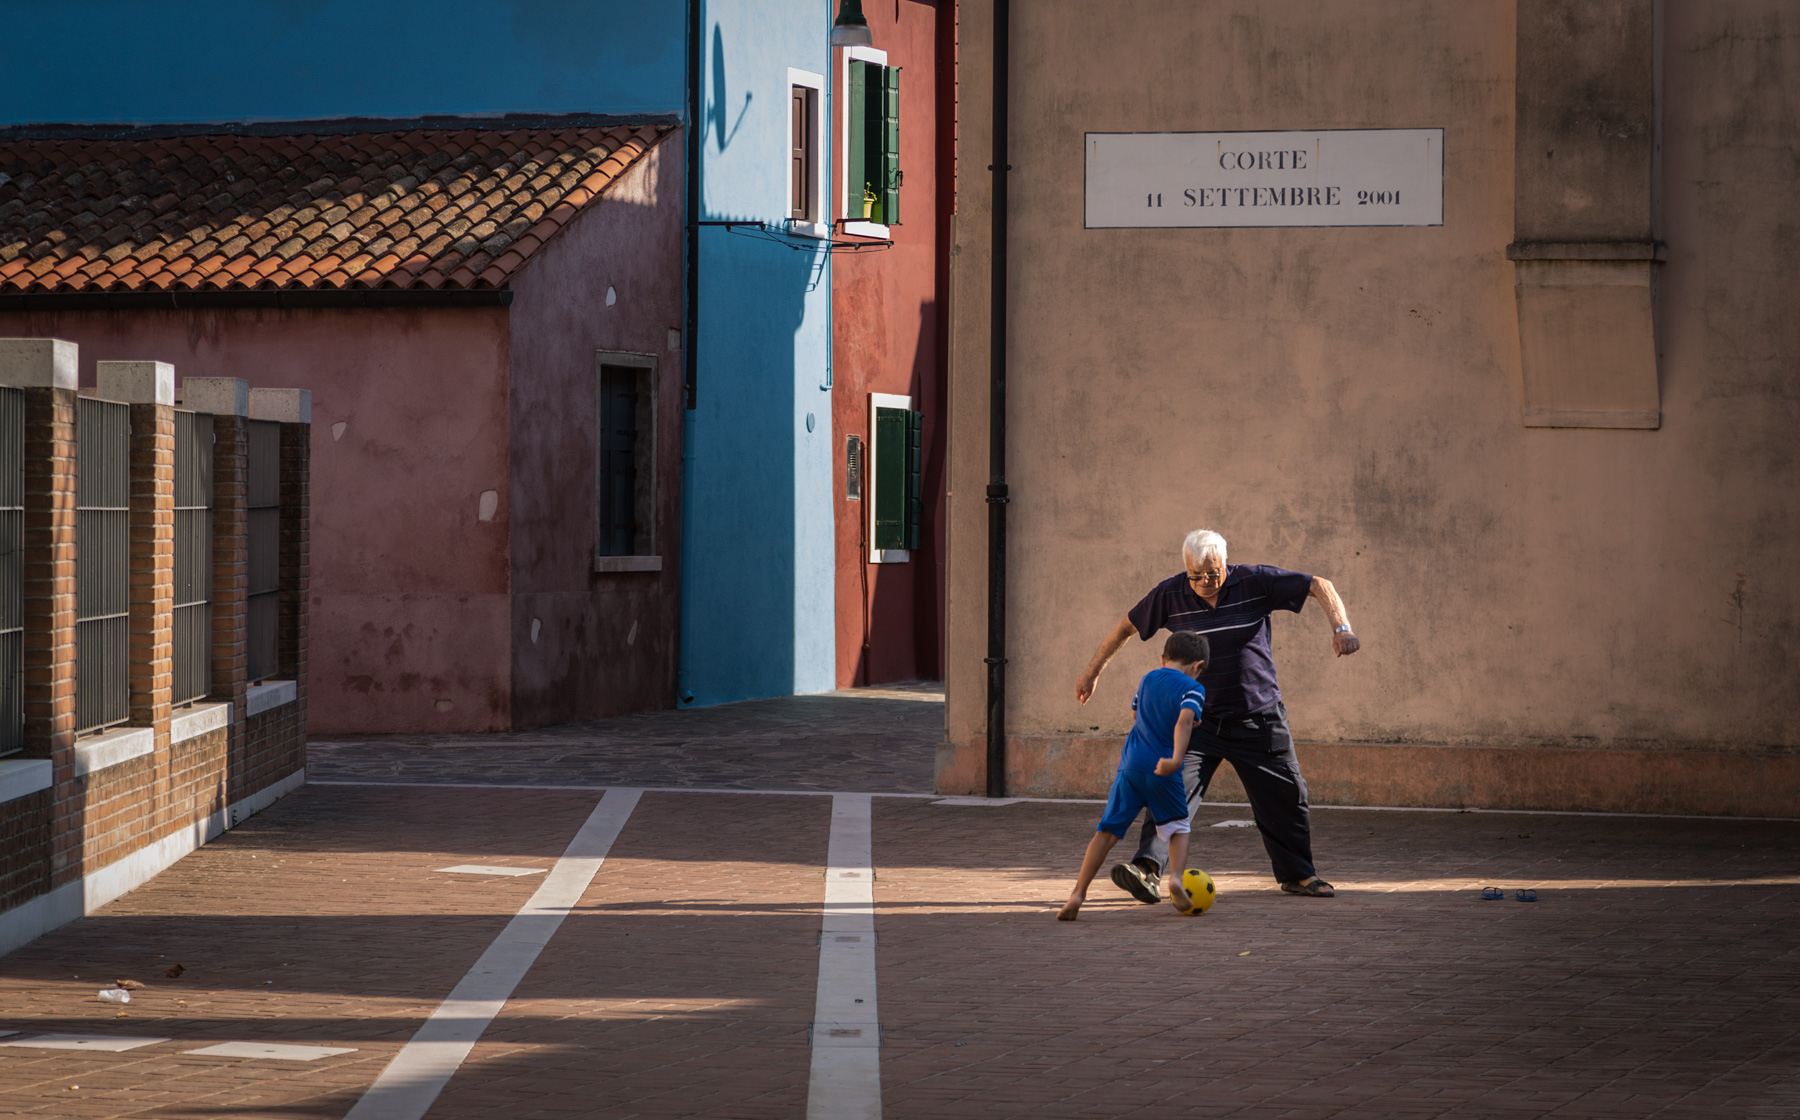 Little kid with his grandpa playing soccer in a little Venice square